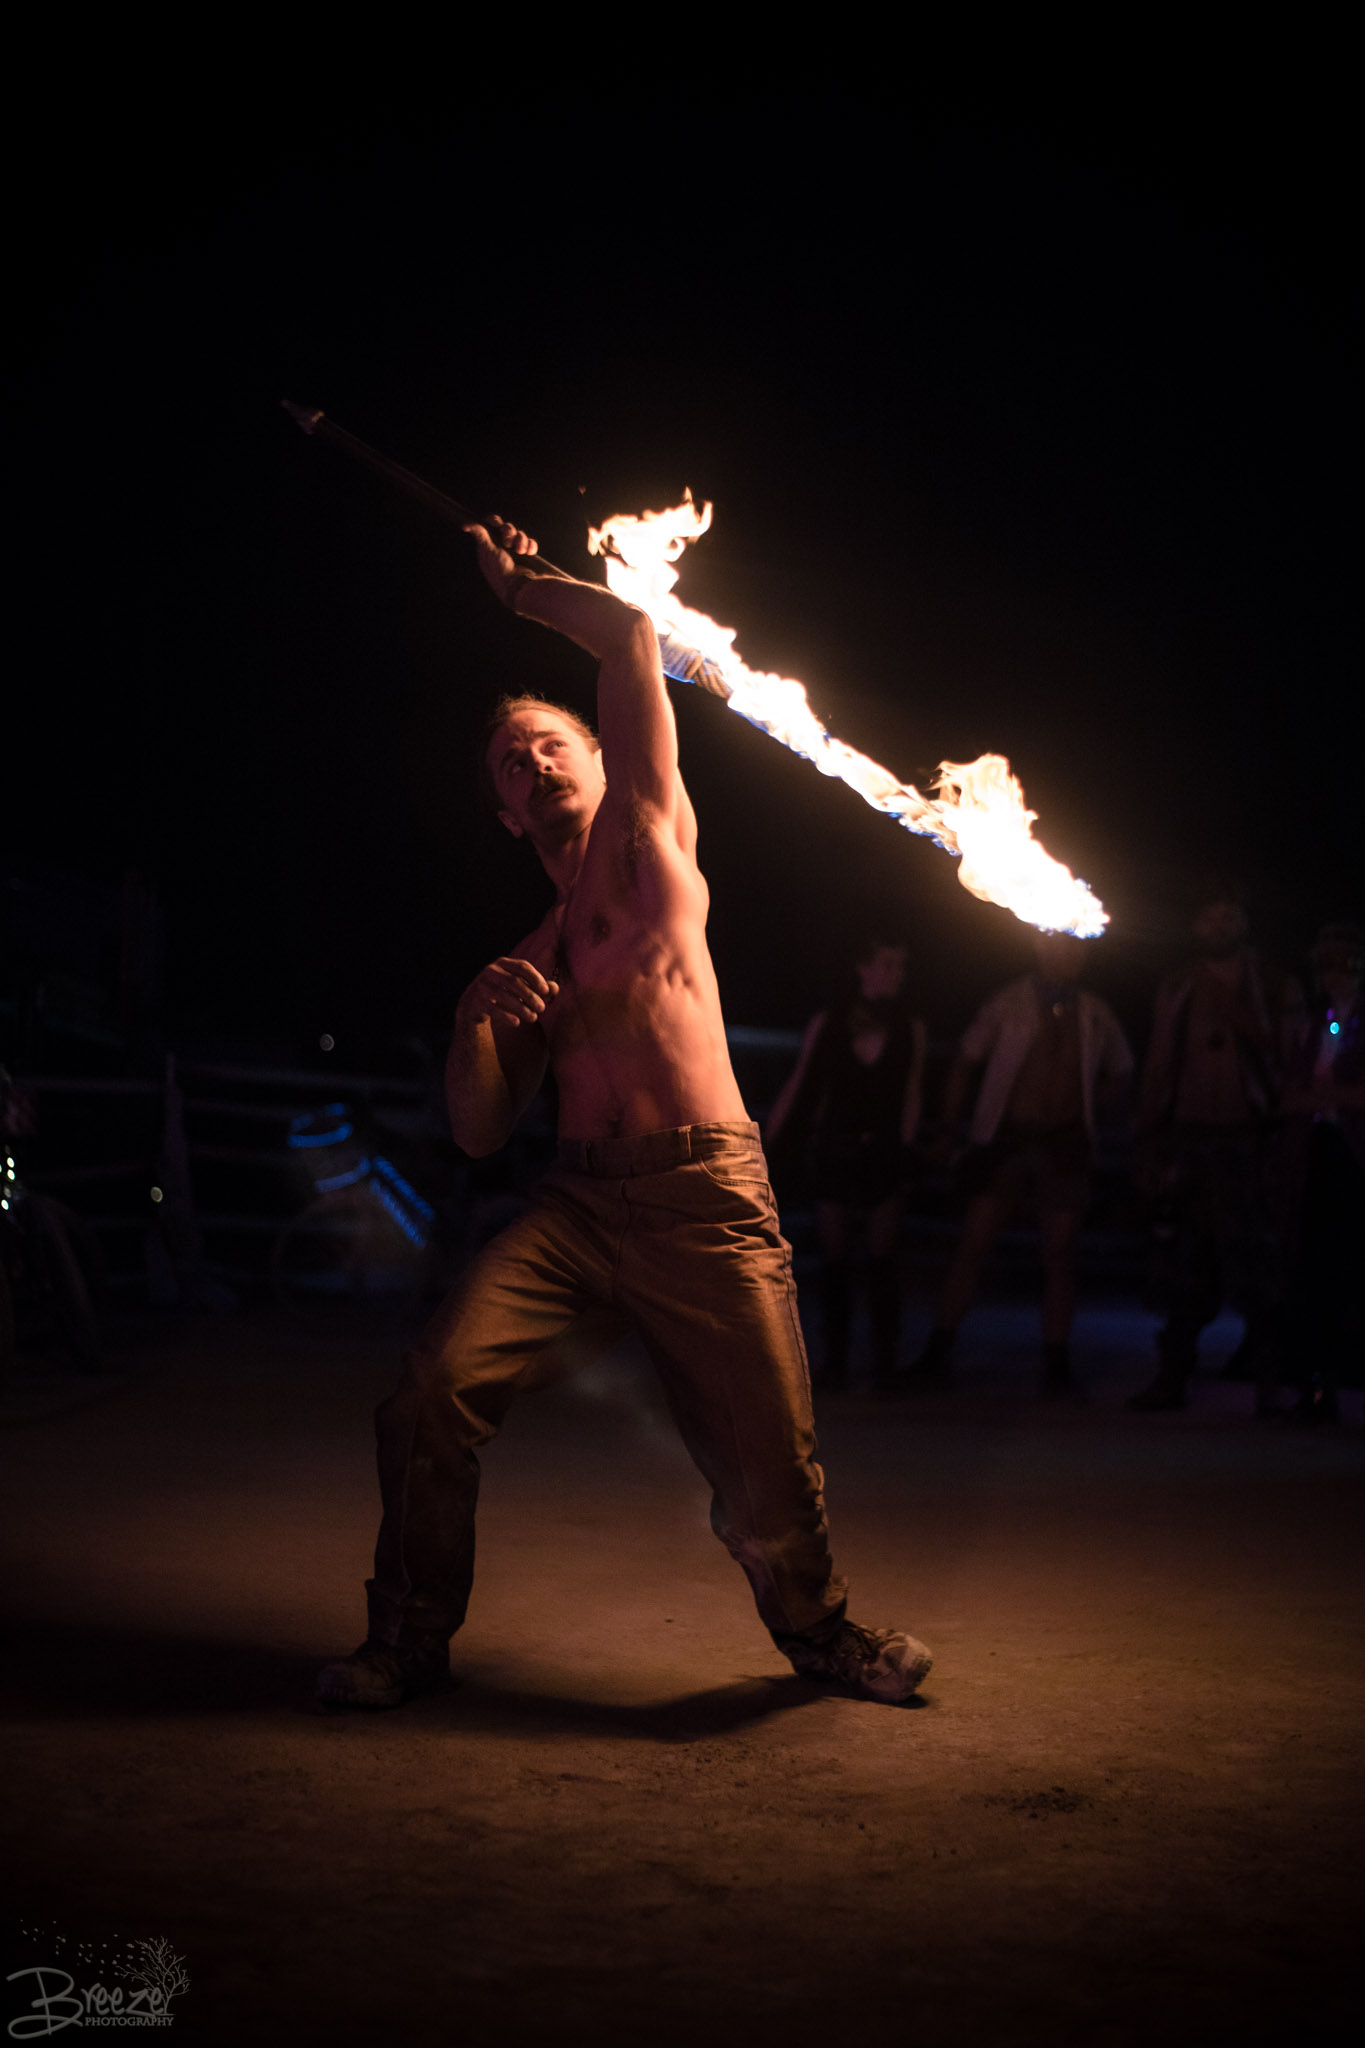 Brie'Ana Breeze Photography & Media - Burning Man 2018-2992.jpg